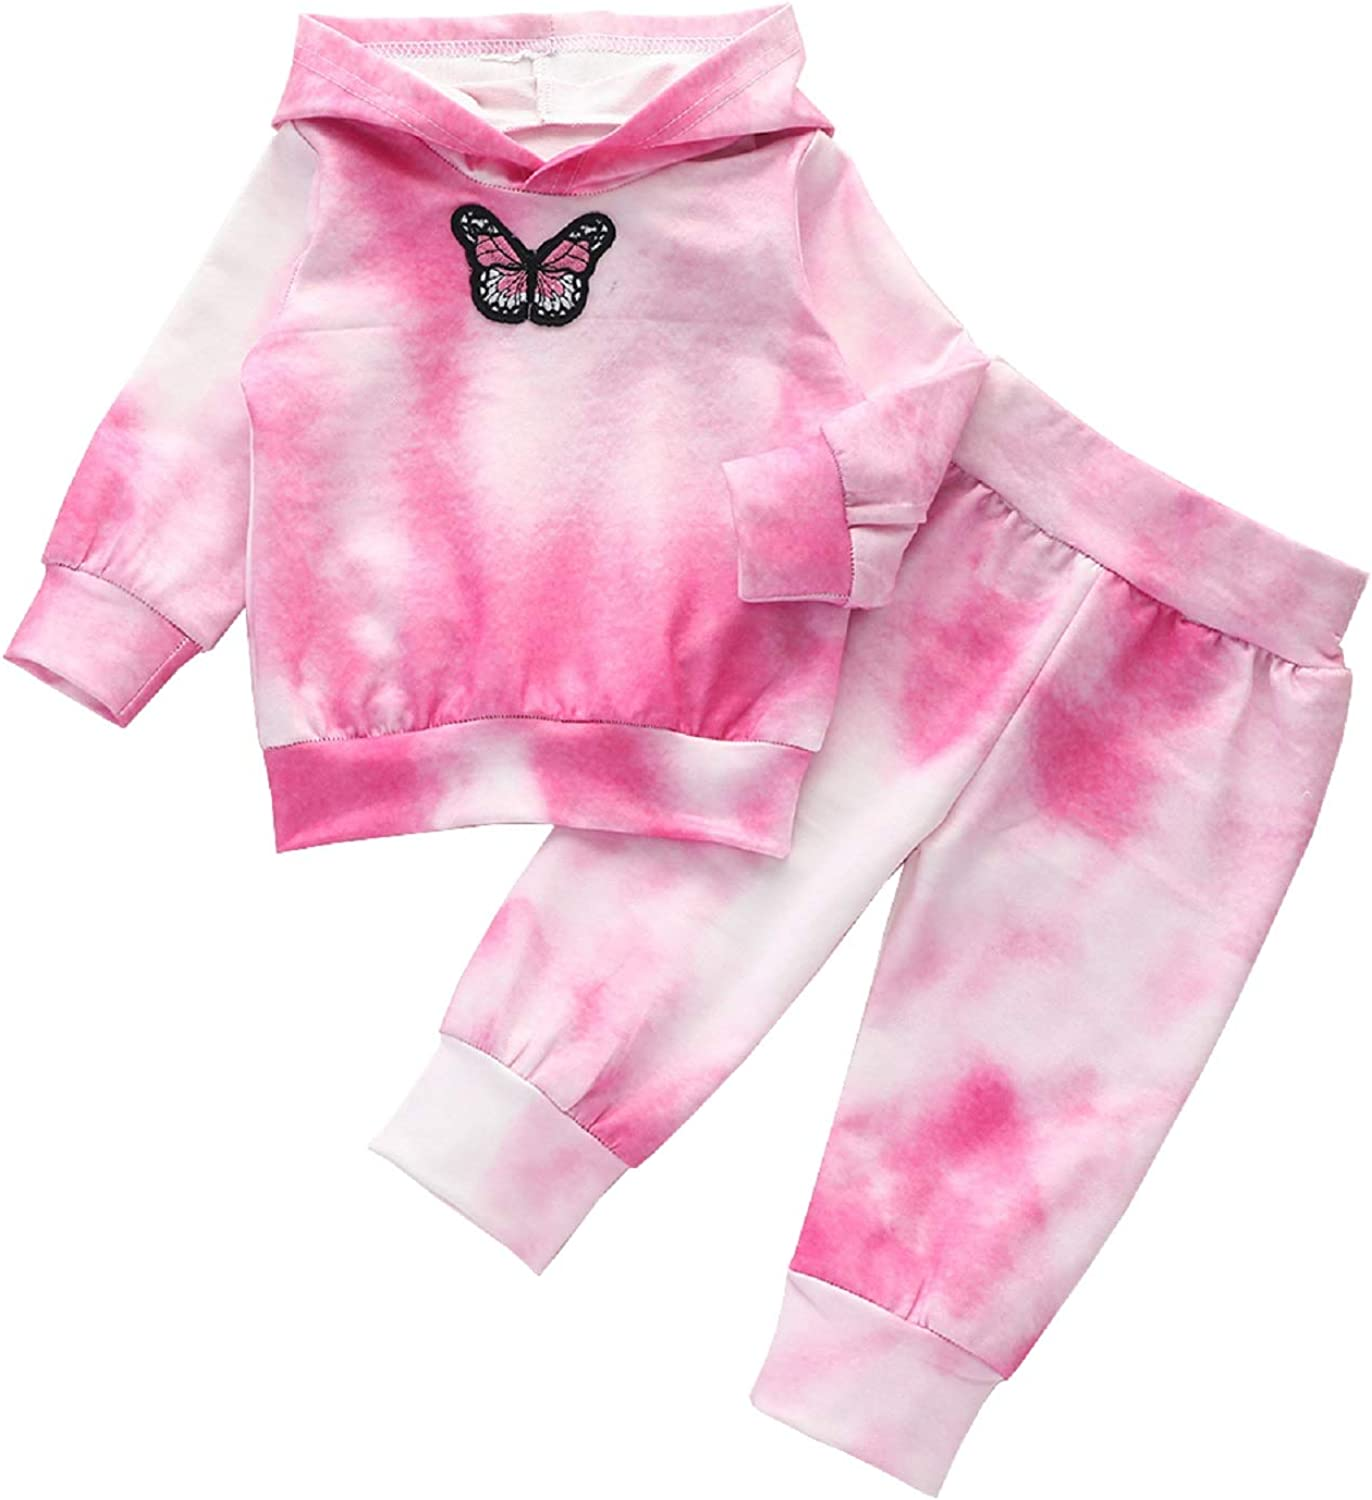 Girls Pink Embriodered Butterfly Top with Ruffle Collar and Legging Set